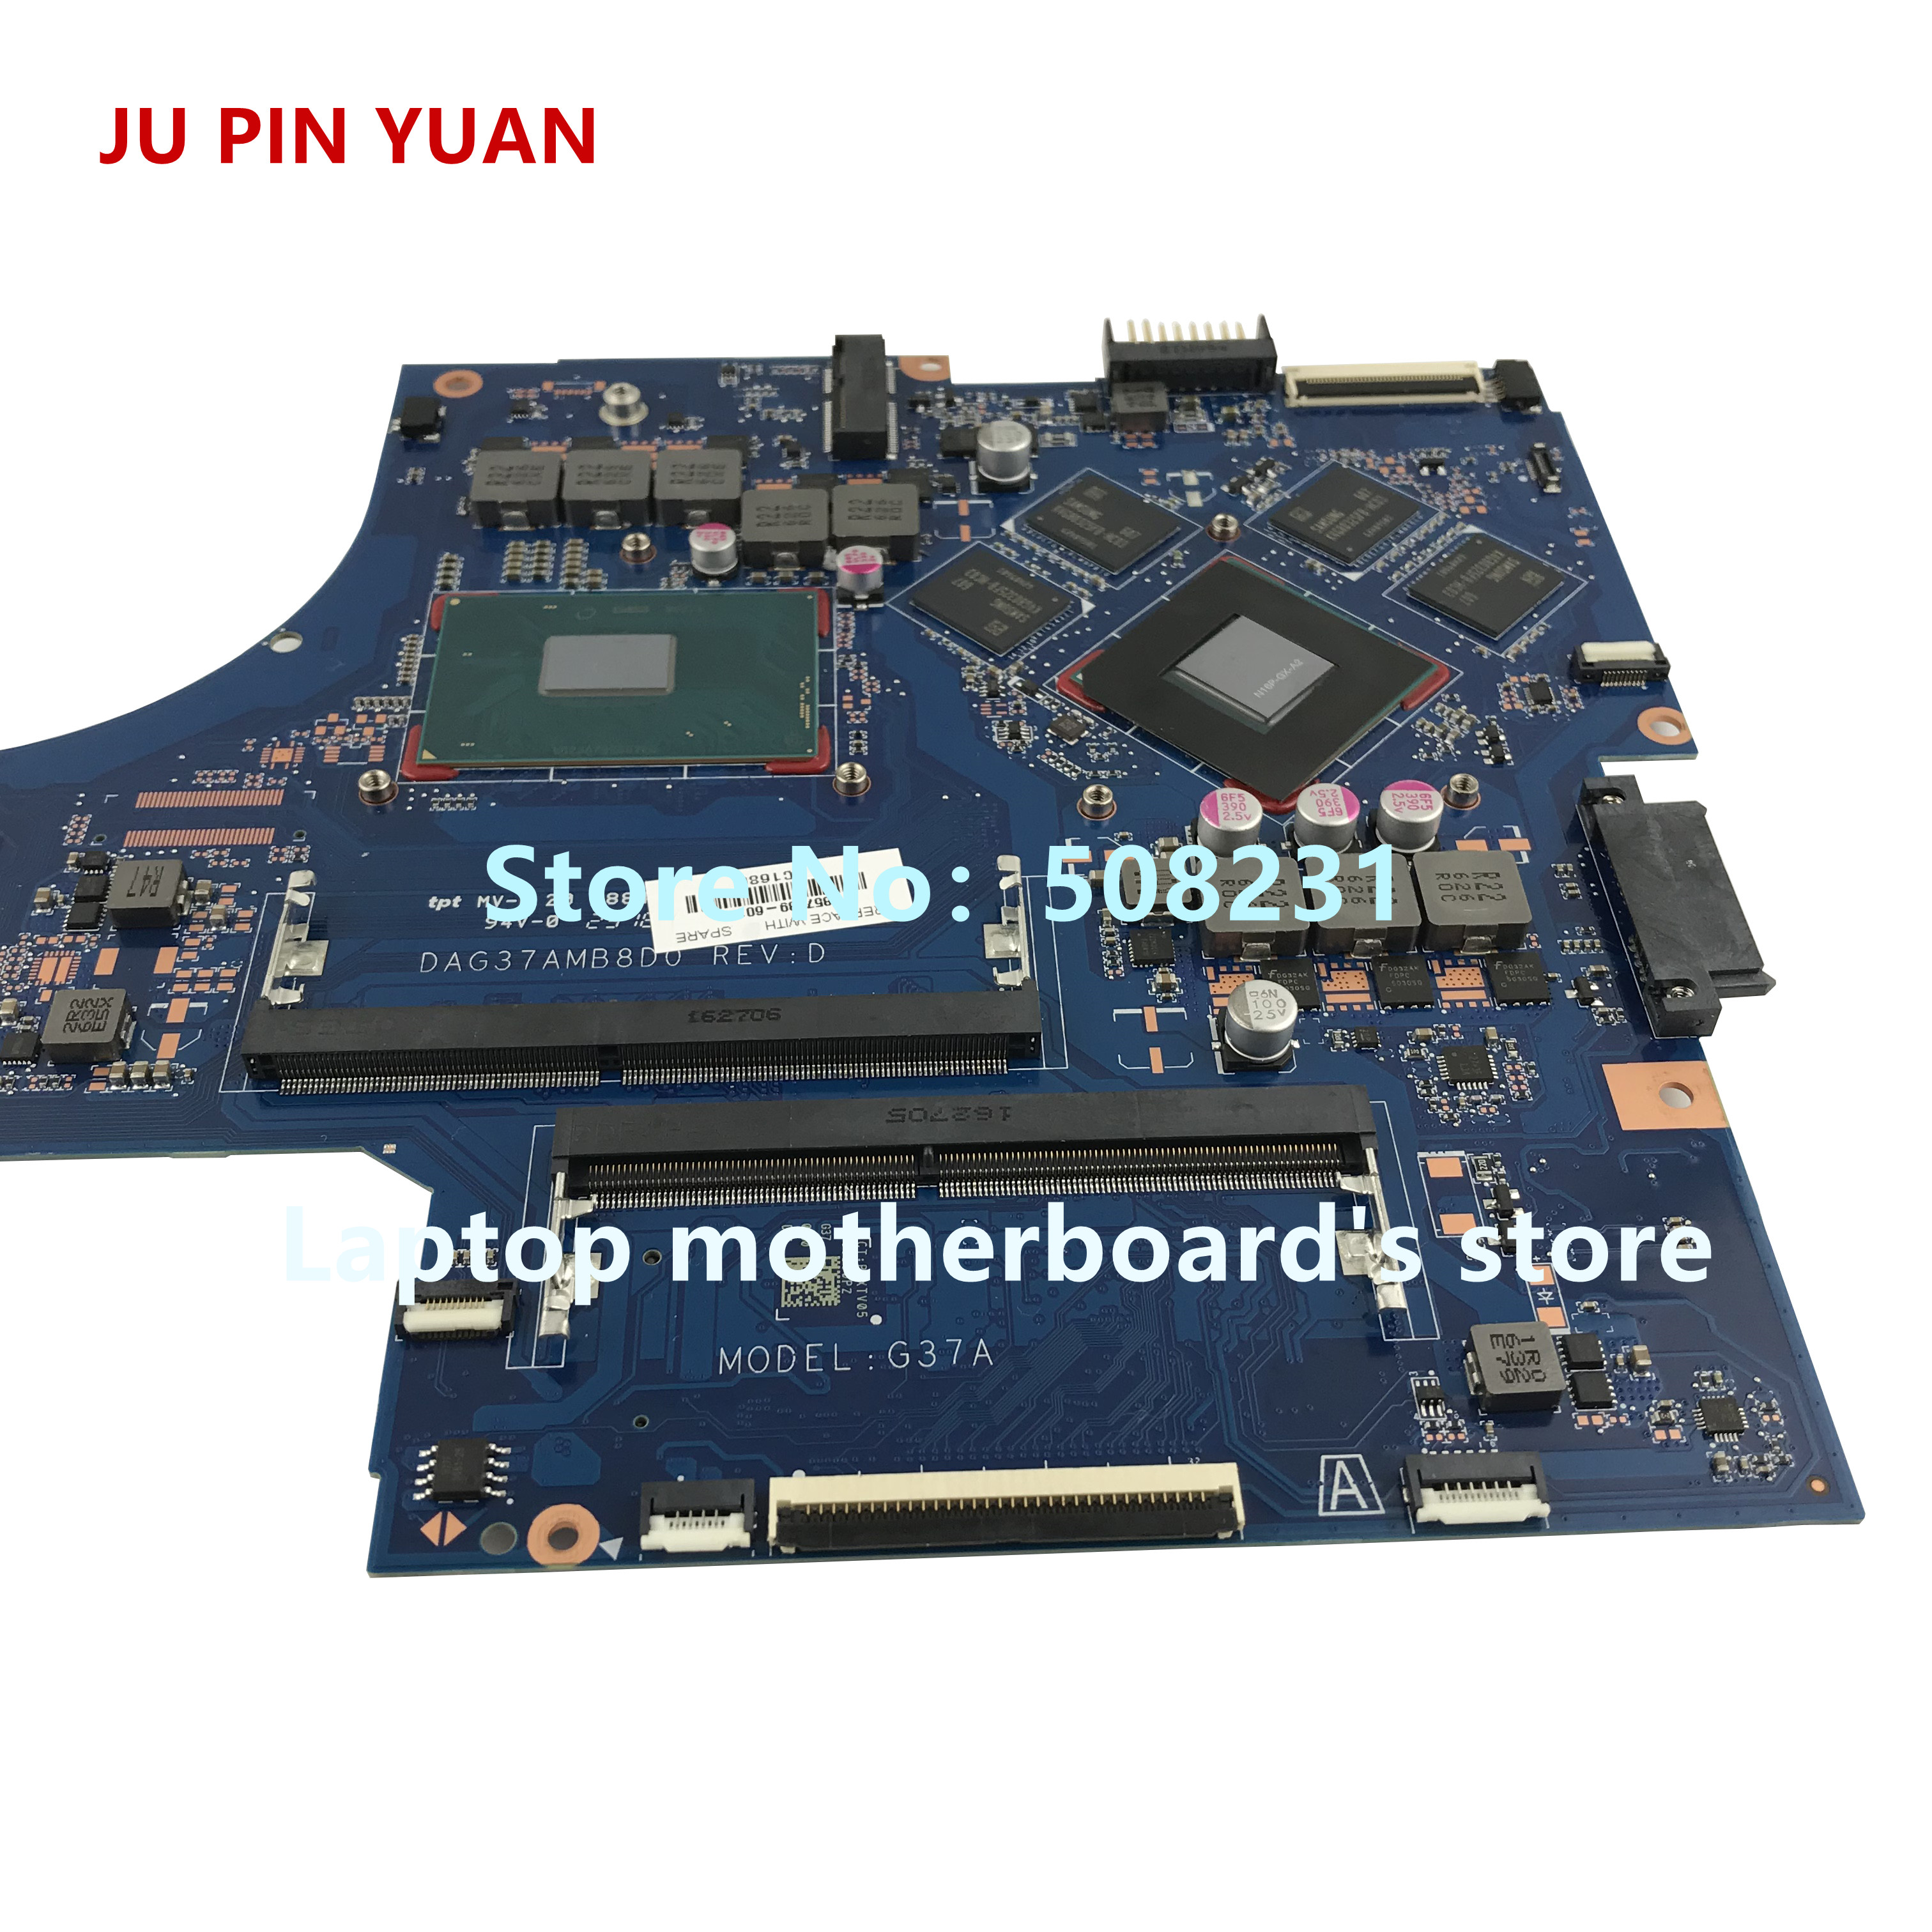 JU PIN YUAN 857389-601 857389-001 DAG37AMB8D0 G37A for HP NOTEBOOK 17-W 17-AB091MS laptop motherboard with 950M 4GB i7-6700HQ